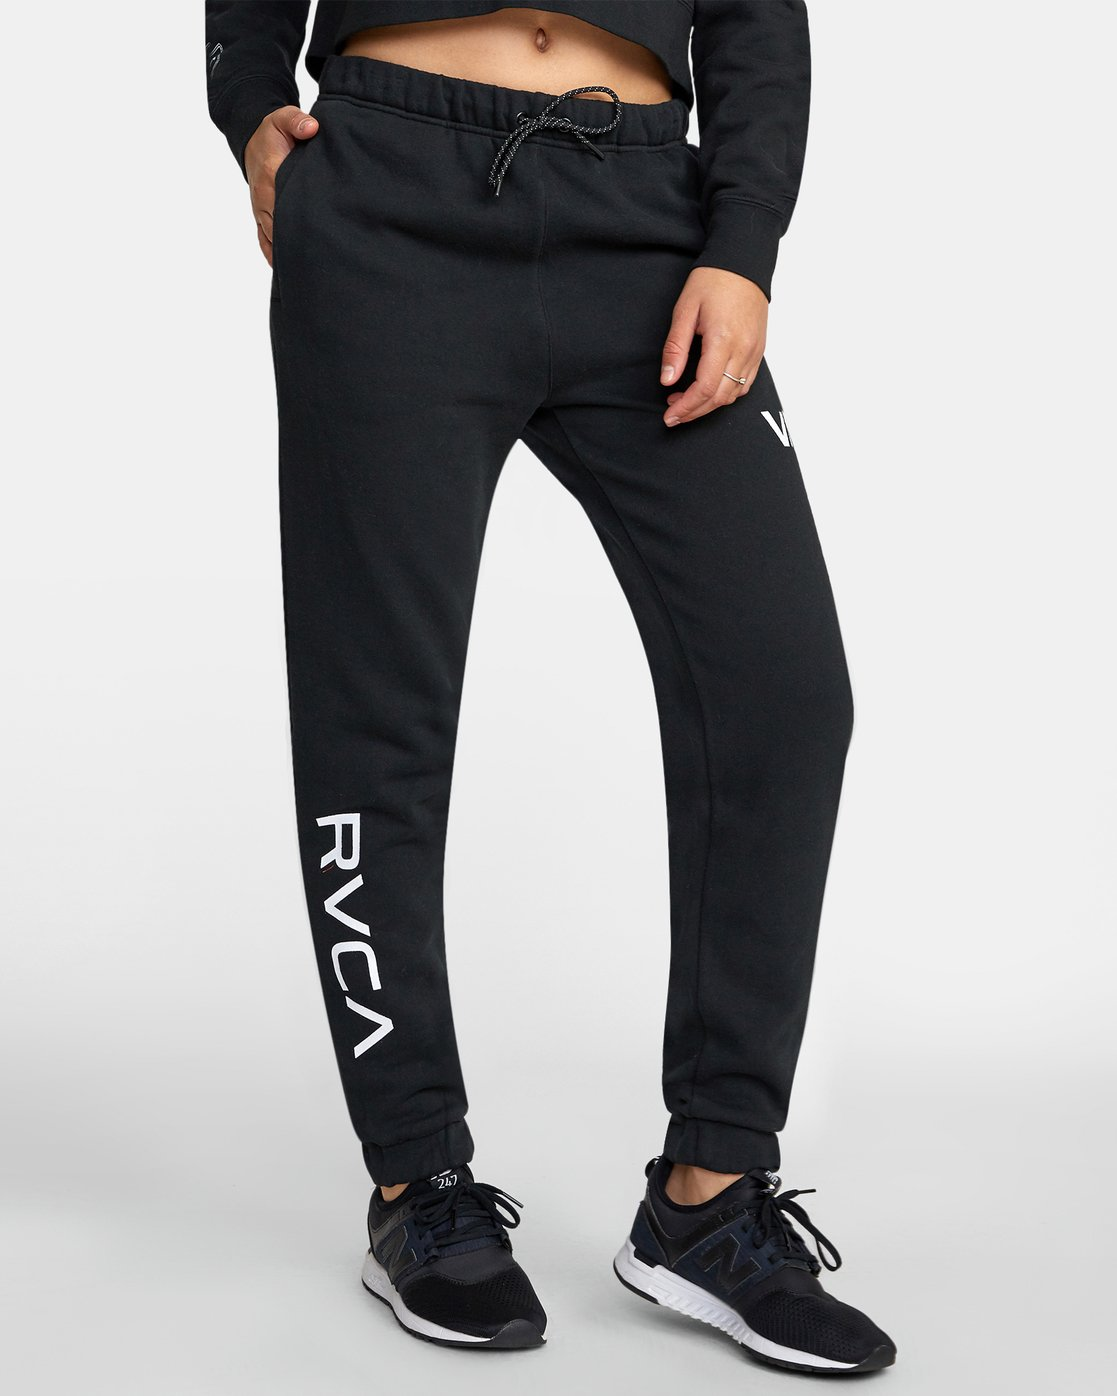 0 SPORT SWEATPANT Black T3071RSS RVCA